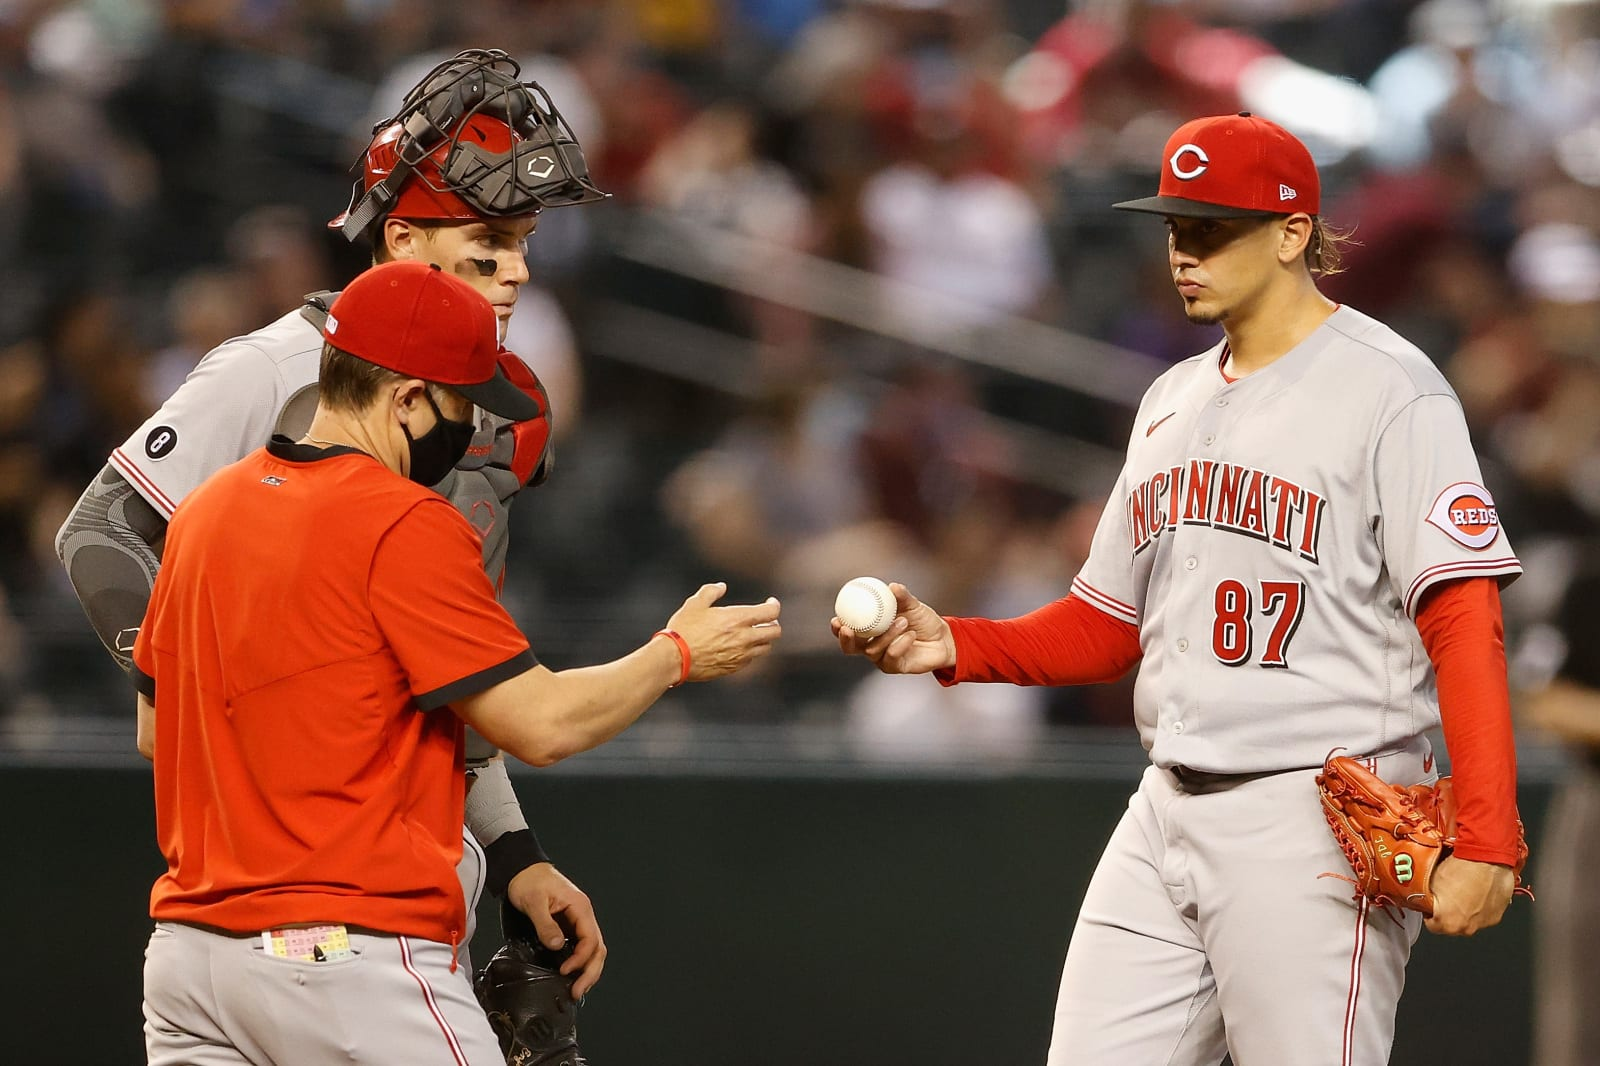 Starting pitcher Jose De Leon #87 of the Cincinnati Reds gives the baseball to manager David Bell #25 during the fifth inning.